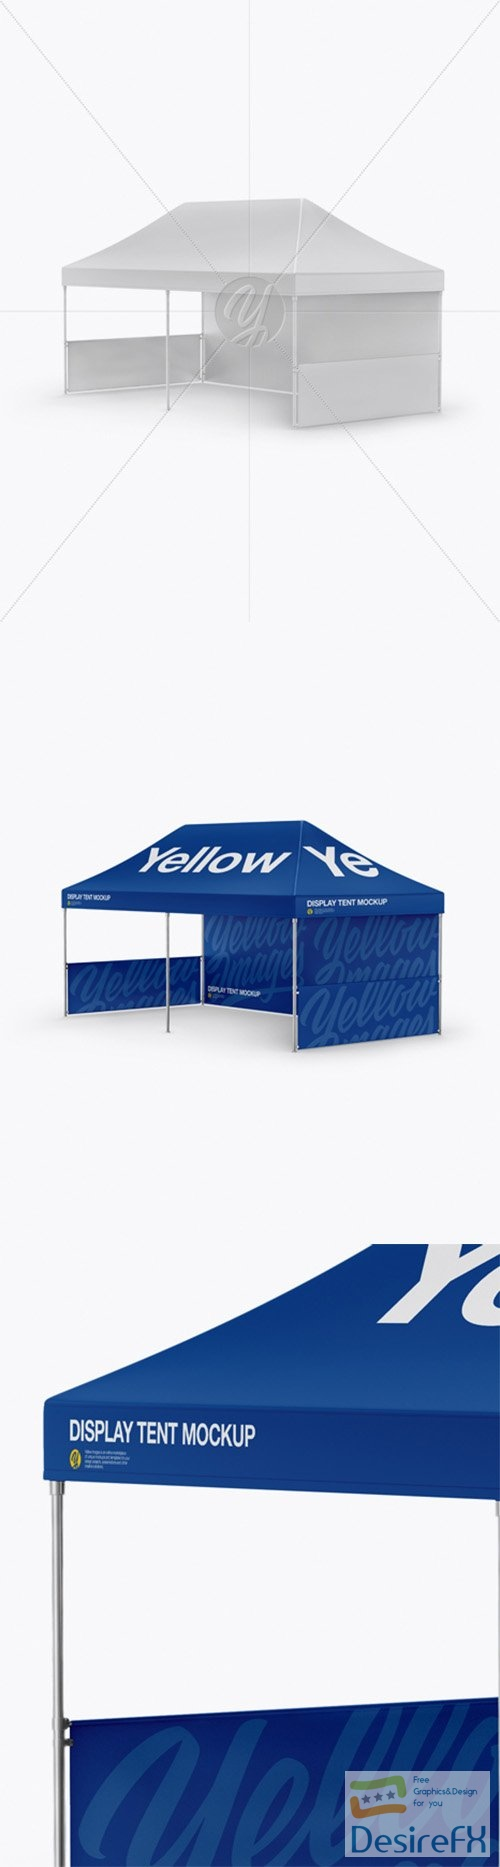 Display Tent Mockup - Half Side View 29857 TIF